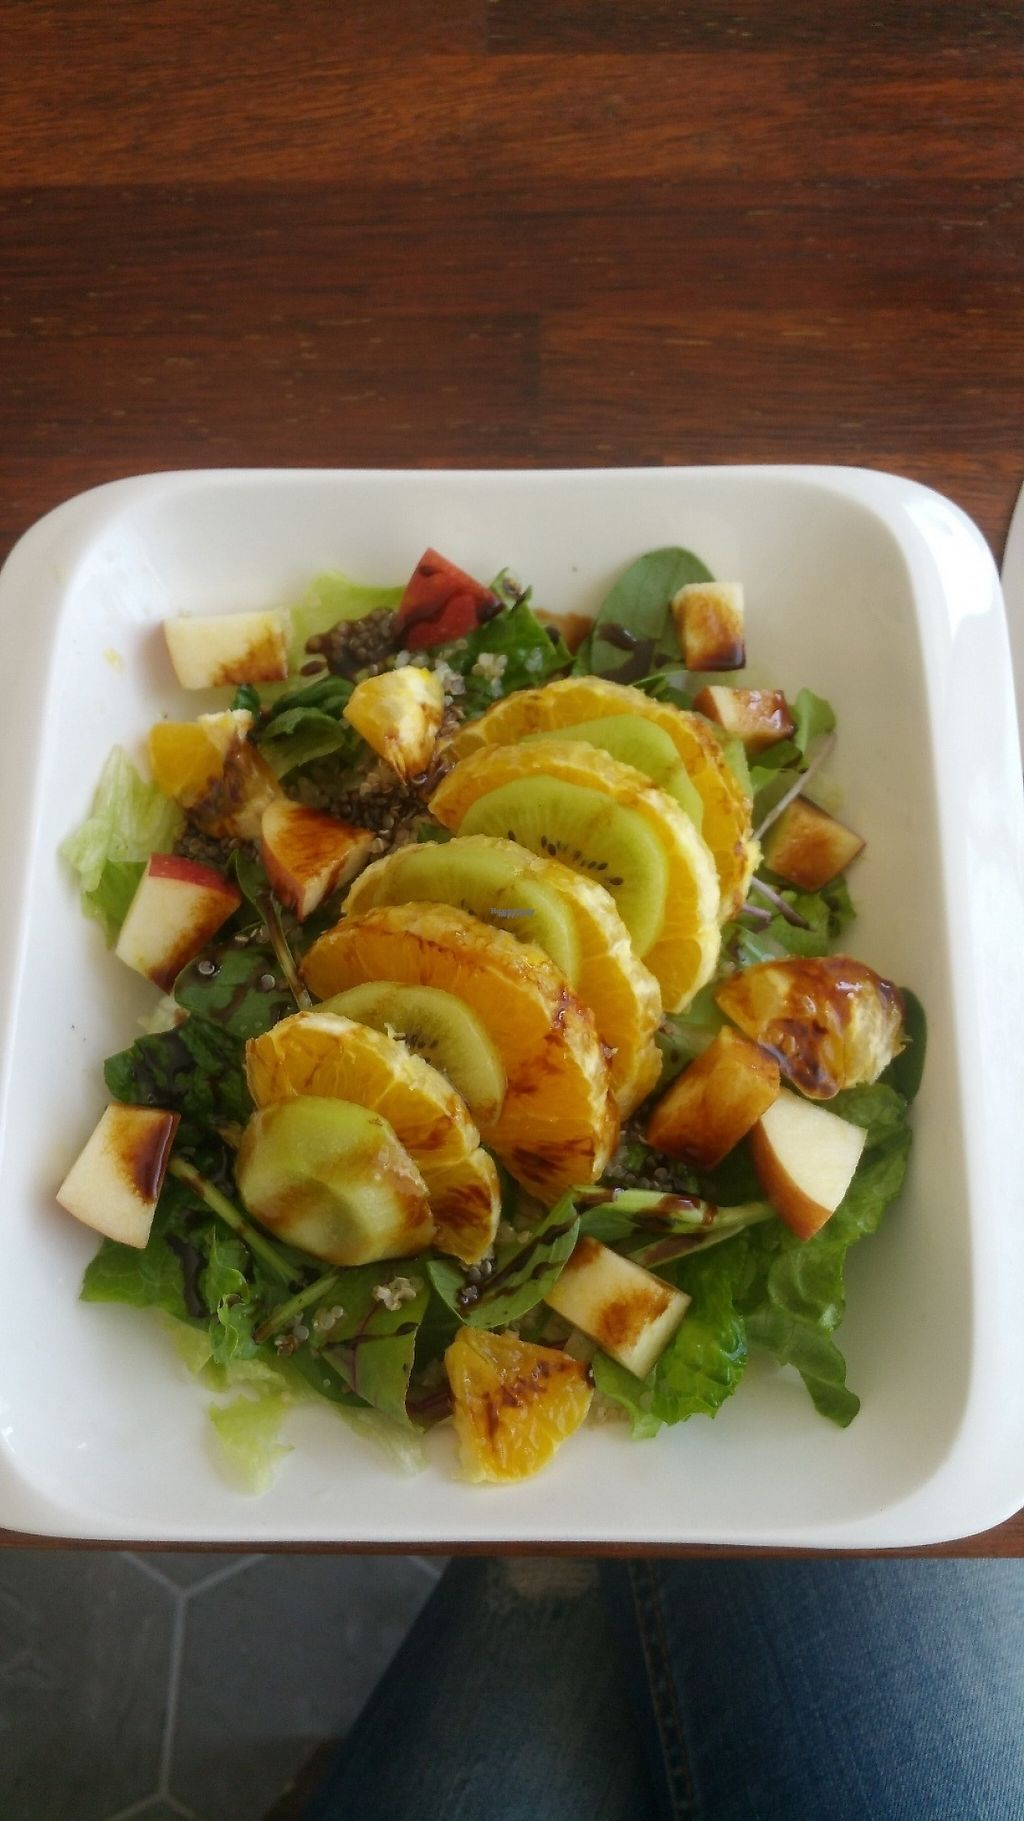 """Photo of Around Green - 어라운드 그린  by <a href=""""/members/profile/Olabusi"""">Olabusi</a> <br/>Quinoa fruit sald <br/> April 10, 2017  - <a href='/contact/abuse/image/88897/246642'>Report</a>"""